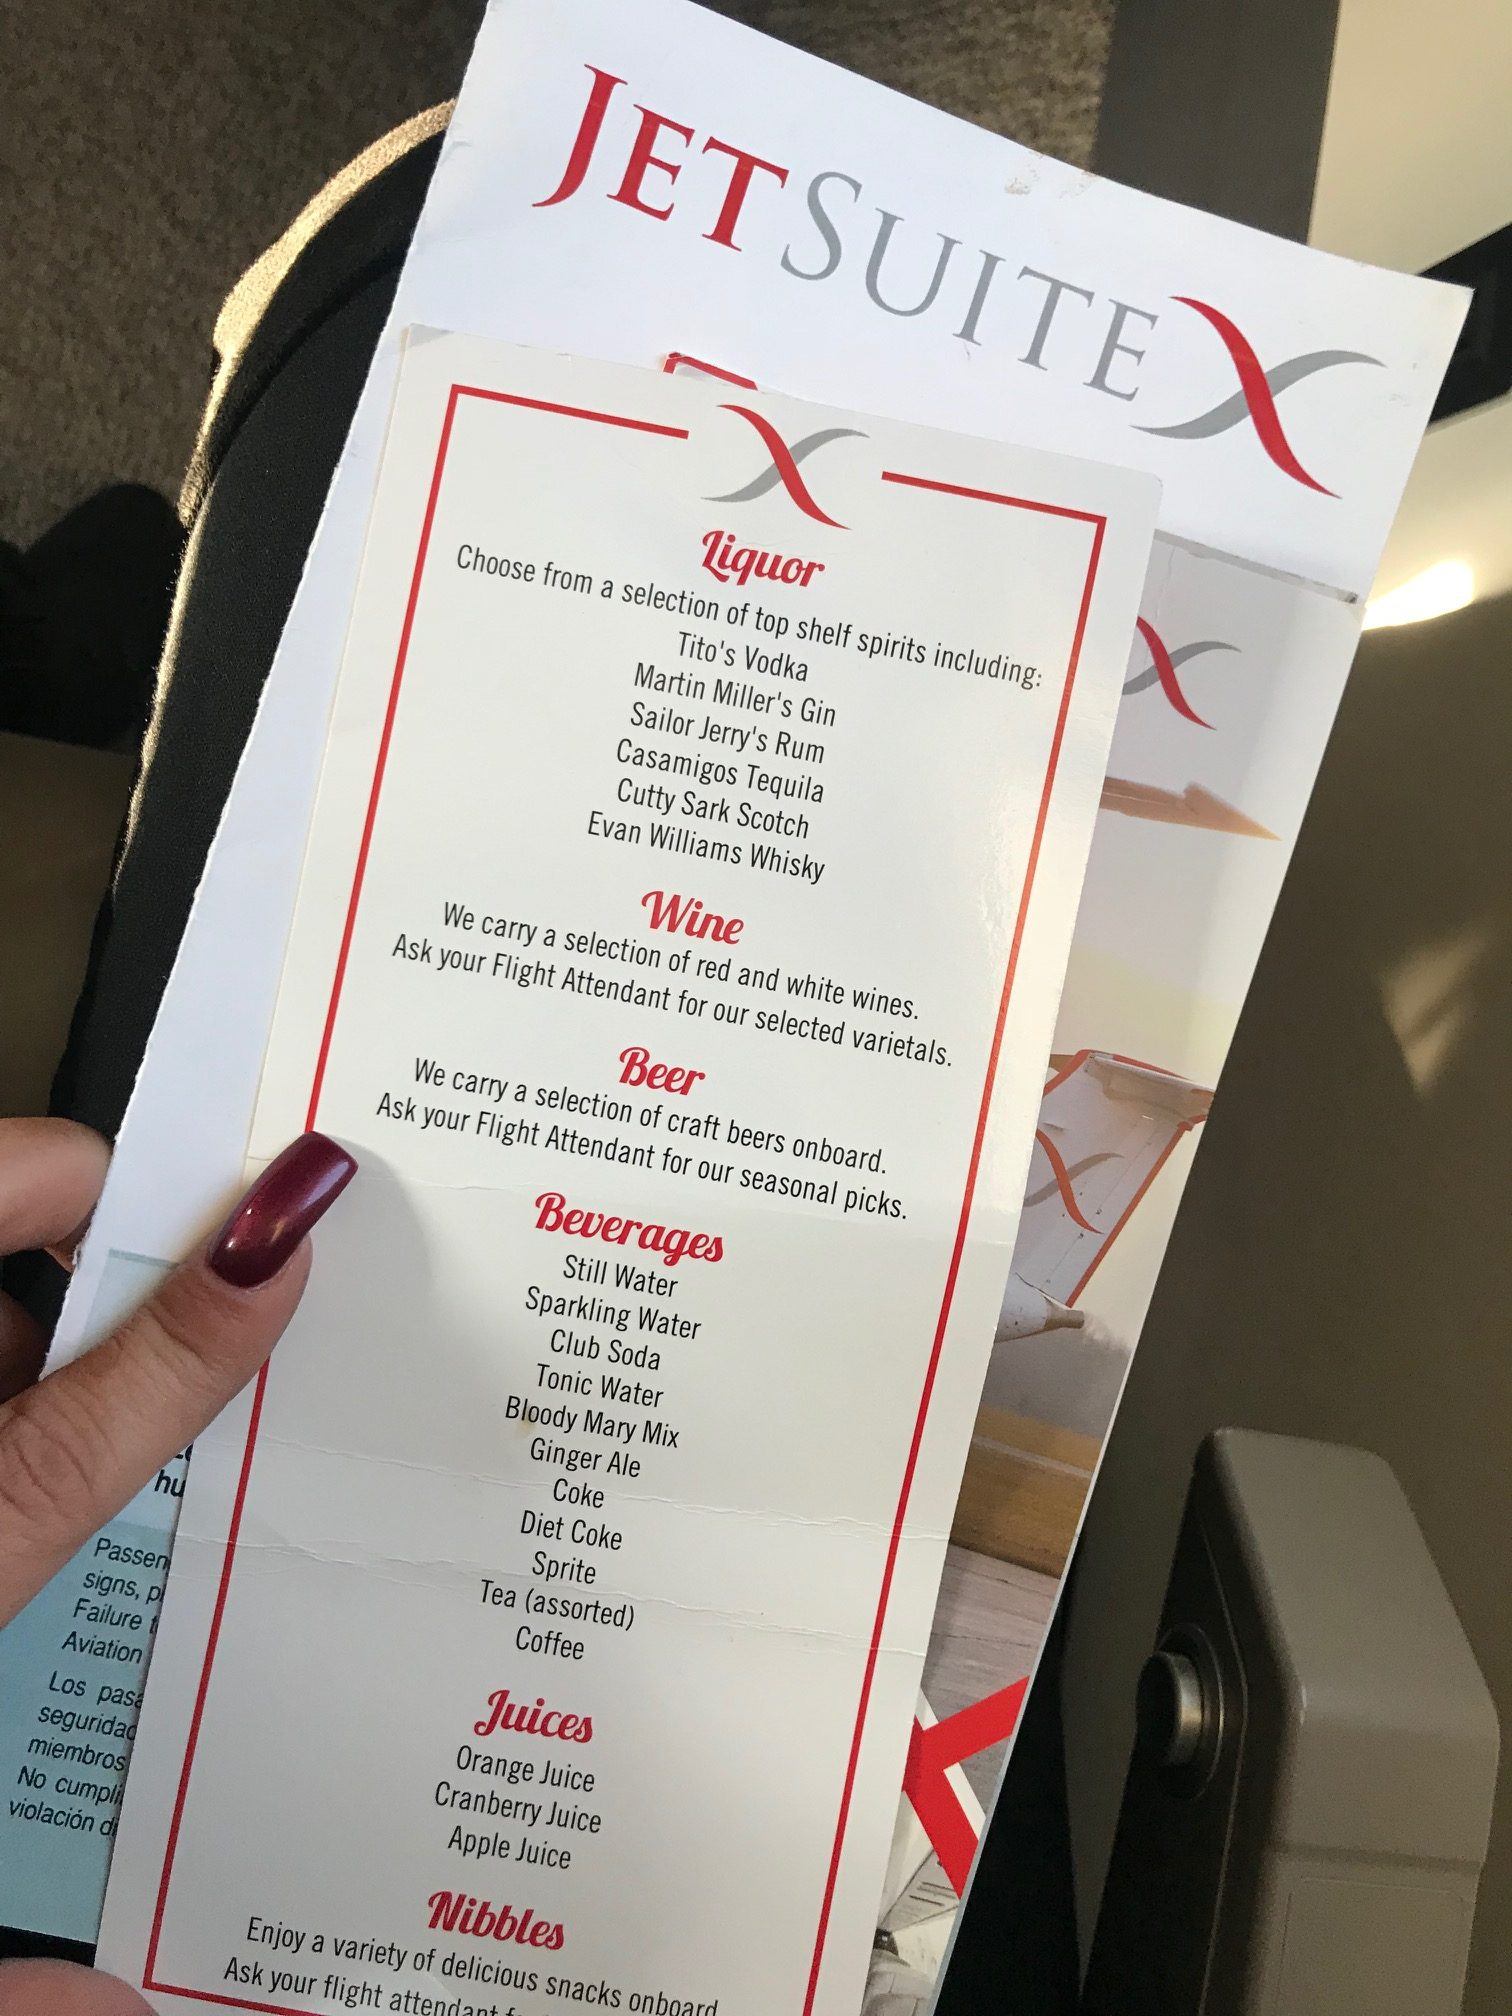 Jetsuitex Experience